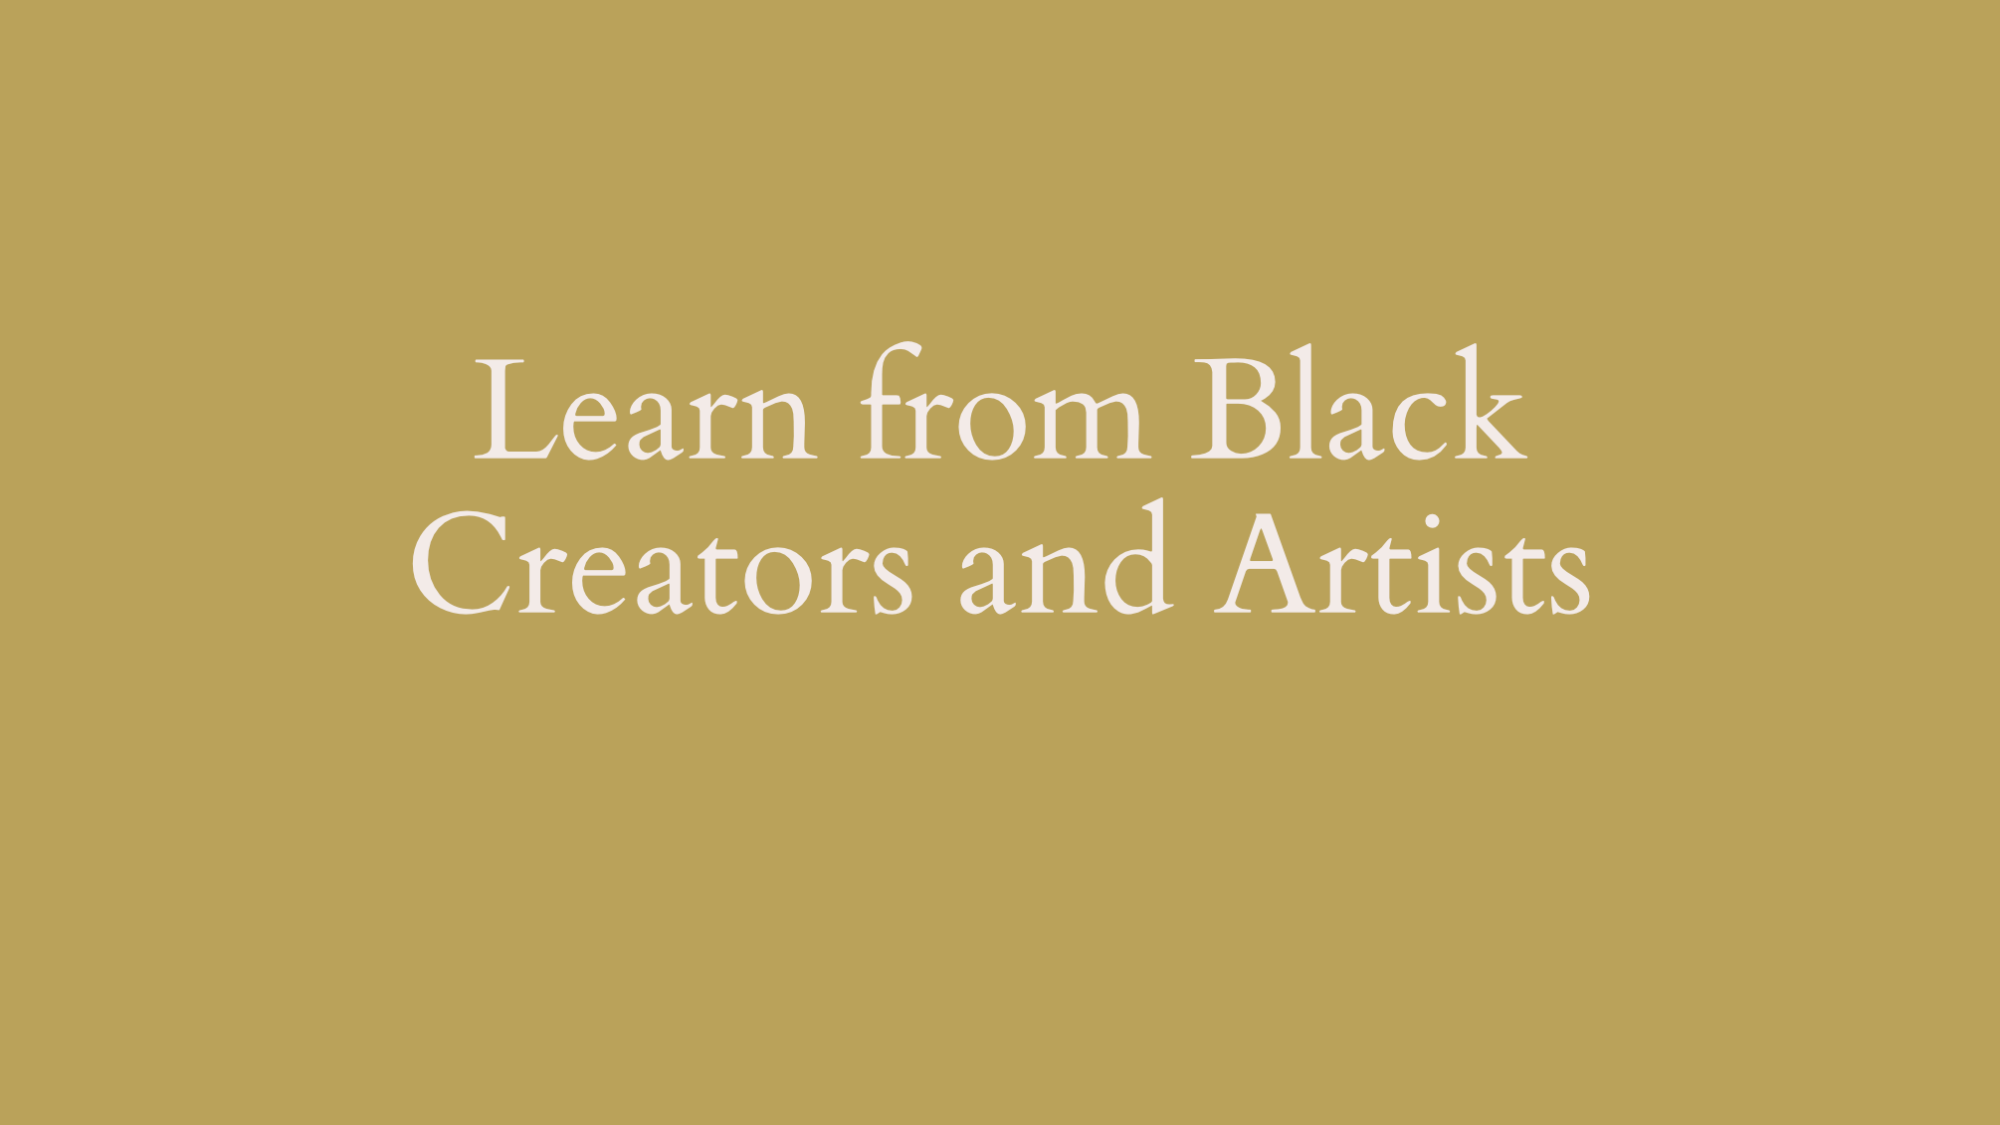 Learn from black creators